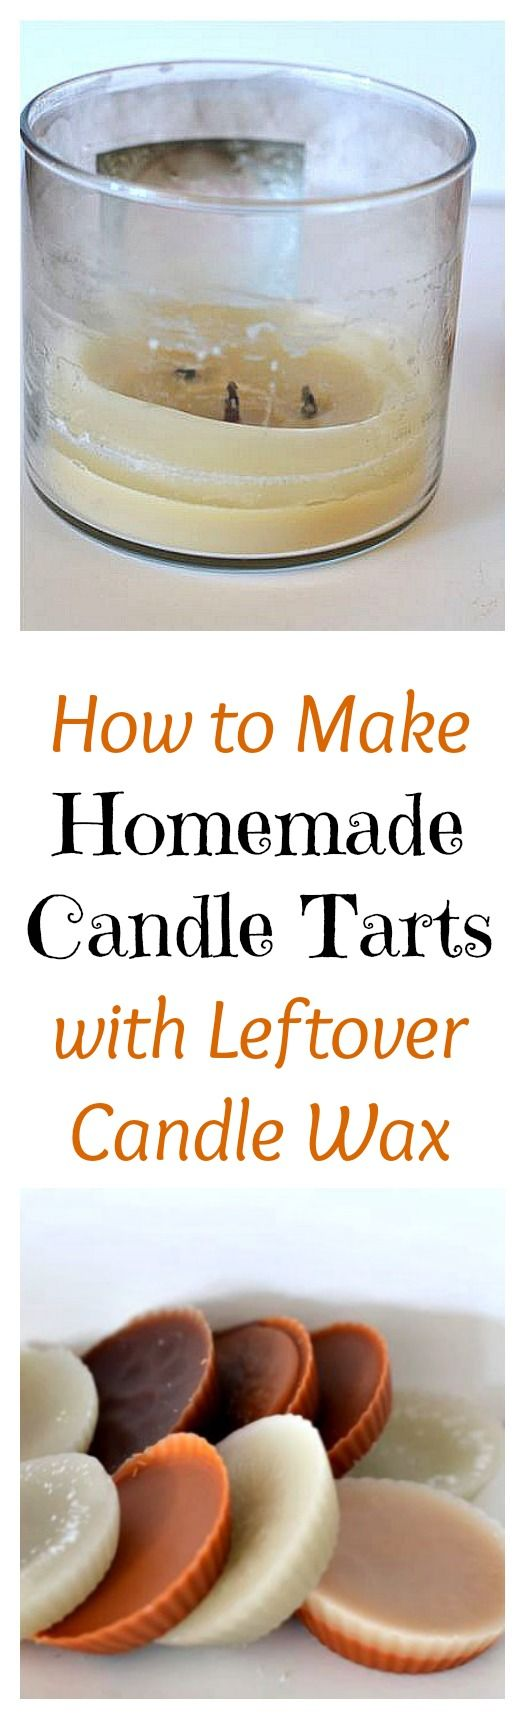 how to make homemade candles candle tarts bougies chandelle et bougeoirs. Black Bedroom Furniture Sets. Home Design Ideas